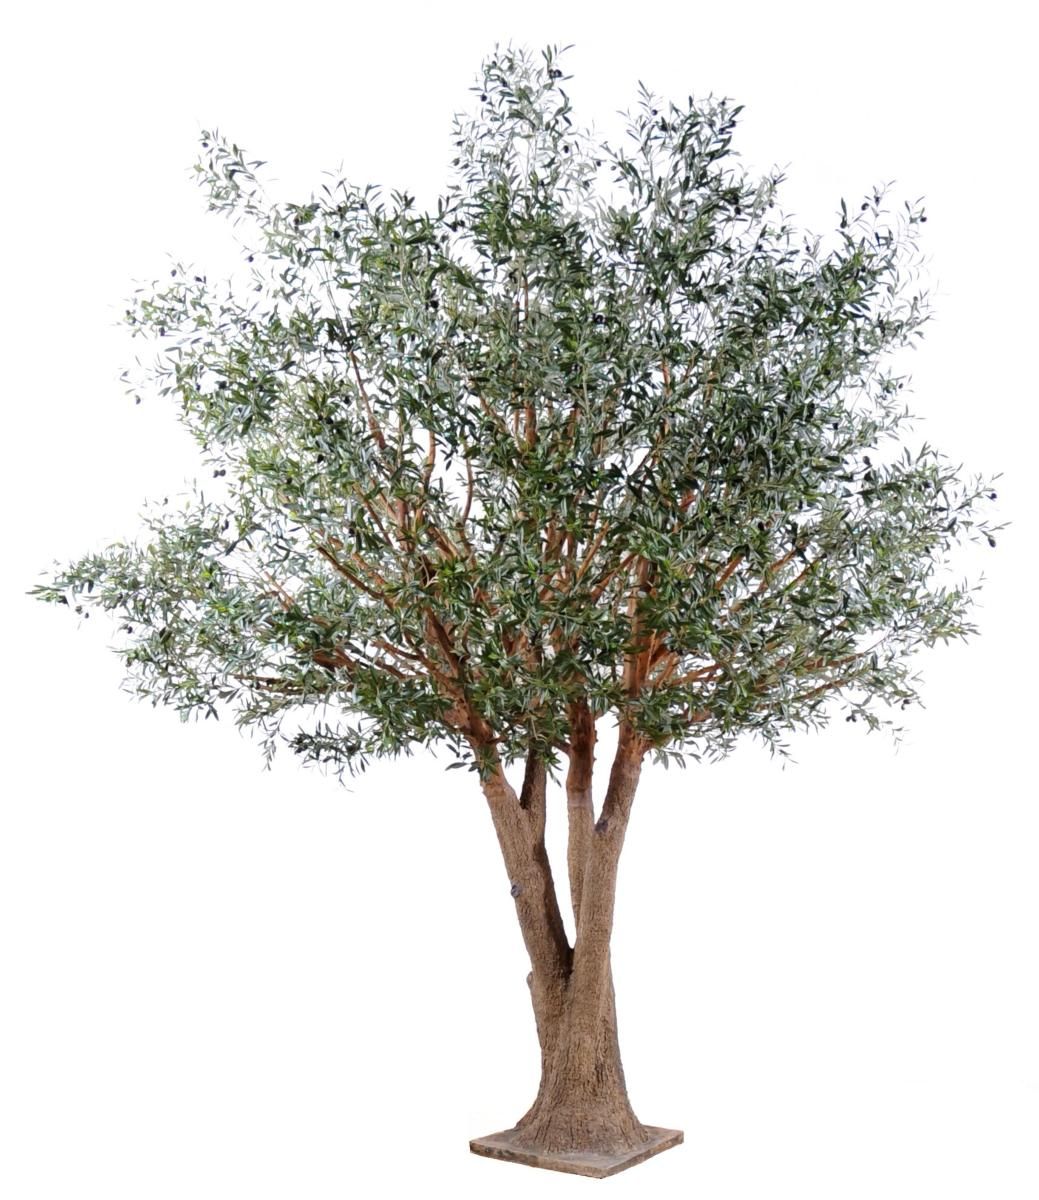 Arbre artificiel olivier new tree plante pour int rieur for Plante arbre interieur